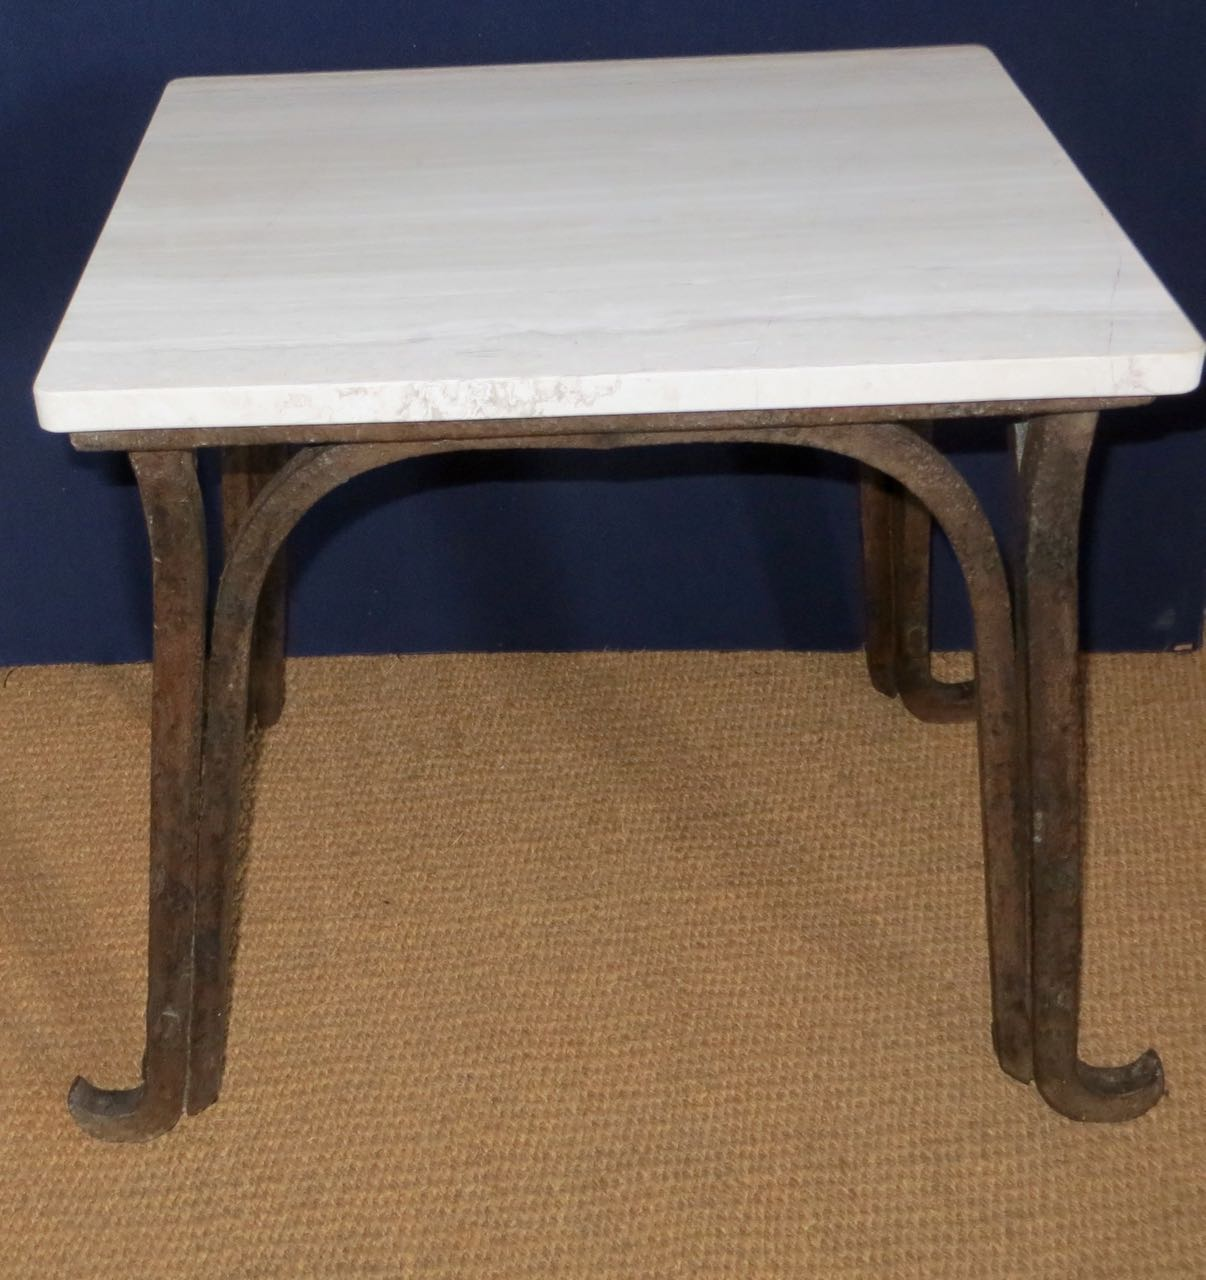 Metal work stand table